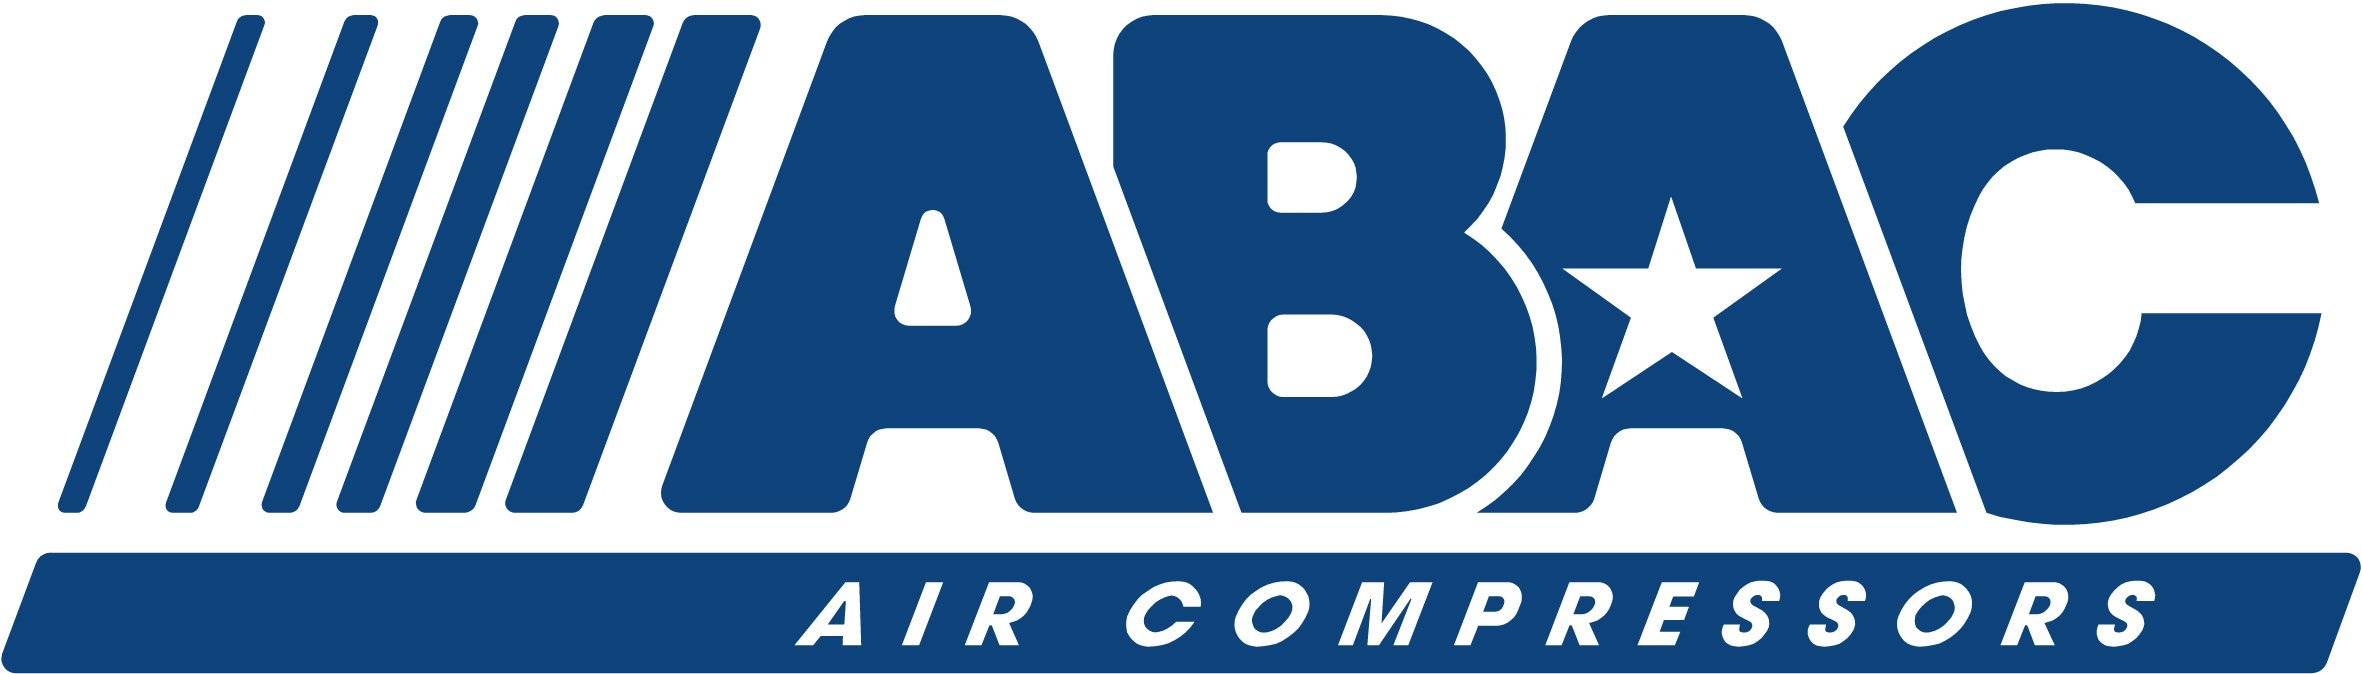 logo ABAC Air Compressors